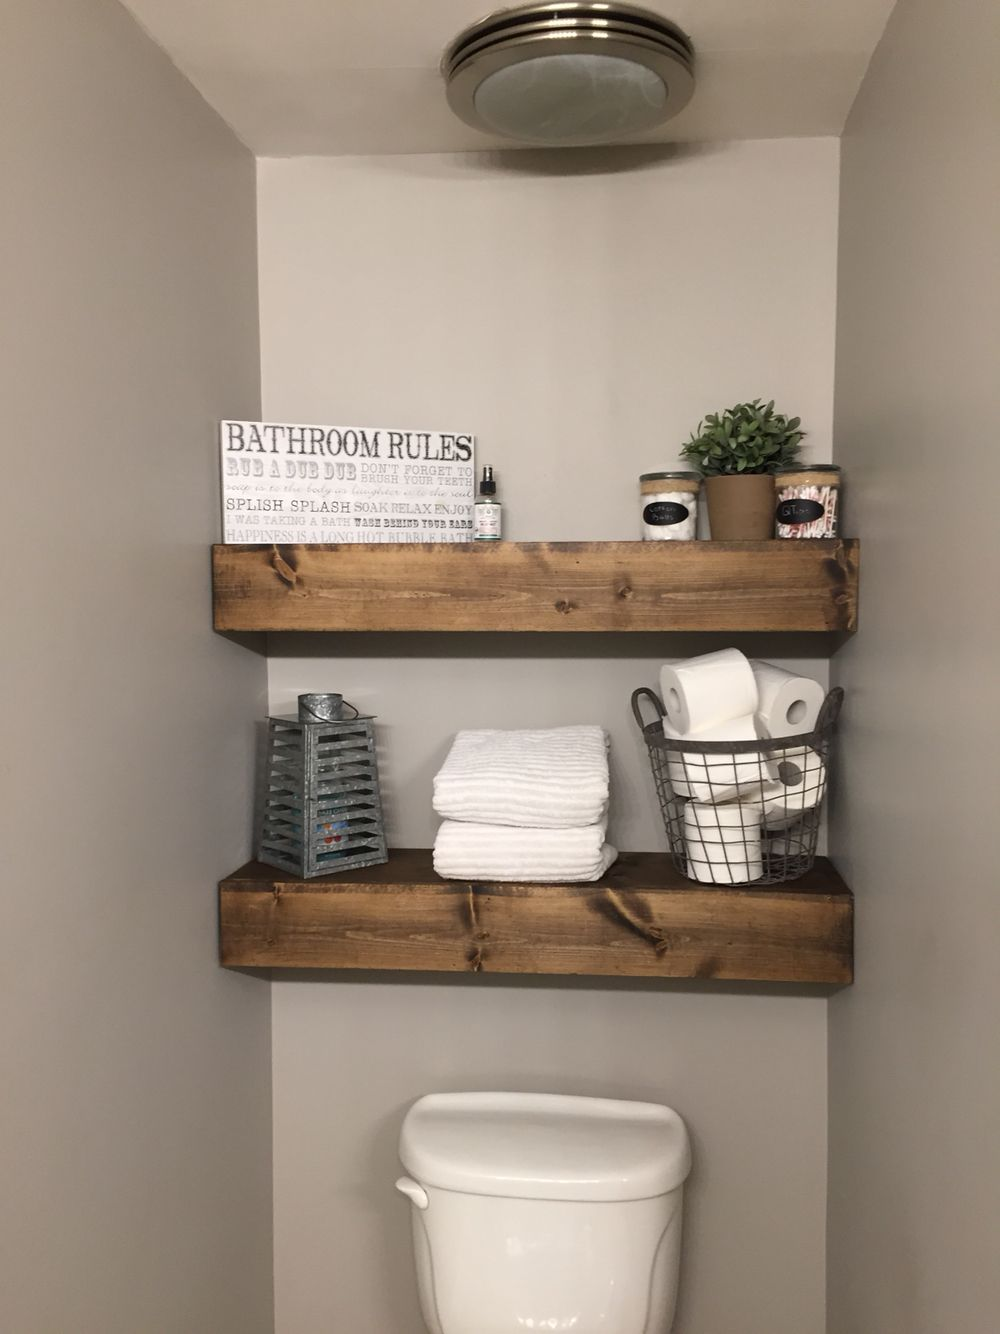 We Built These Chunky Wood Shelves In Our Bathroom!! I Love